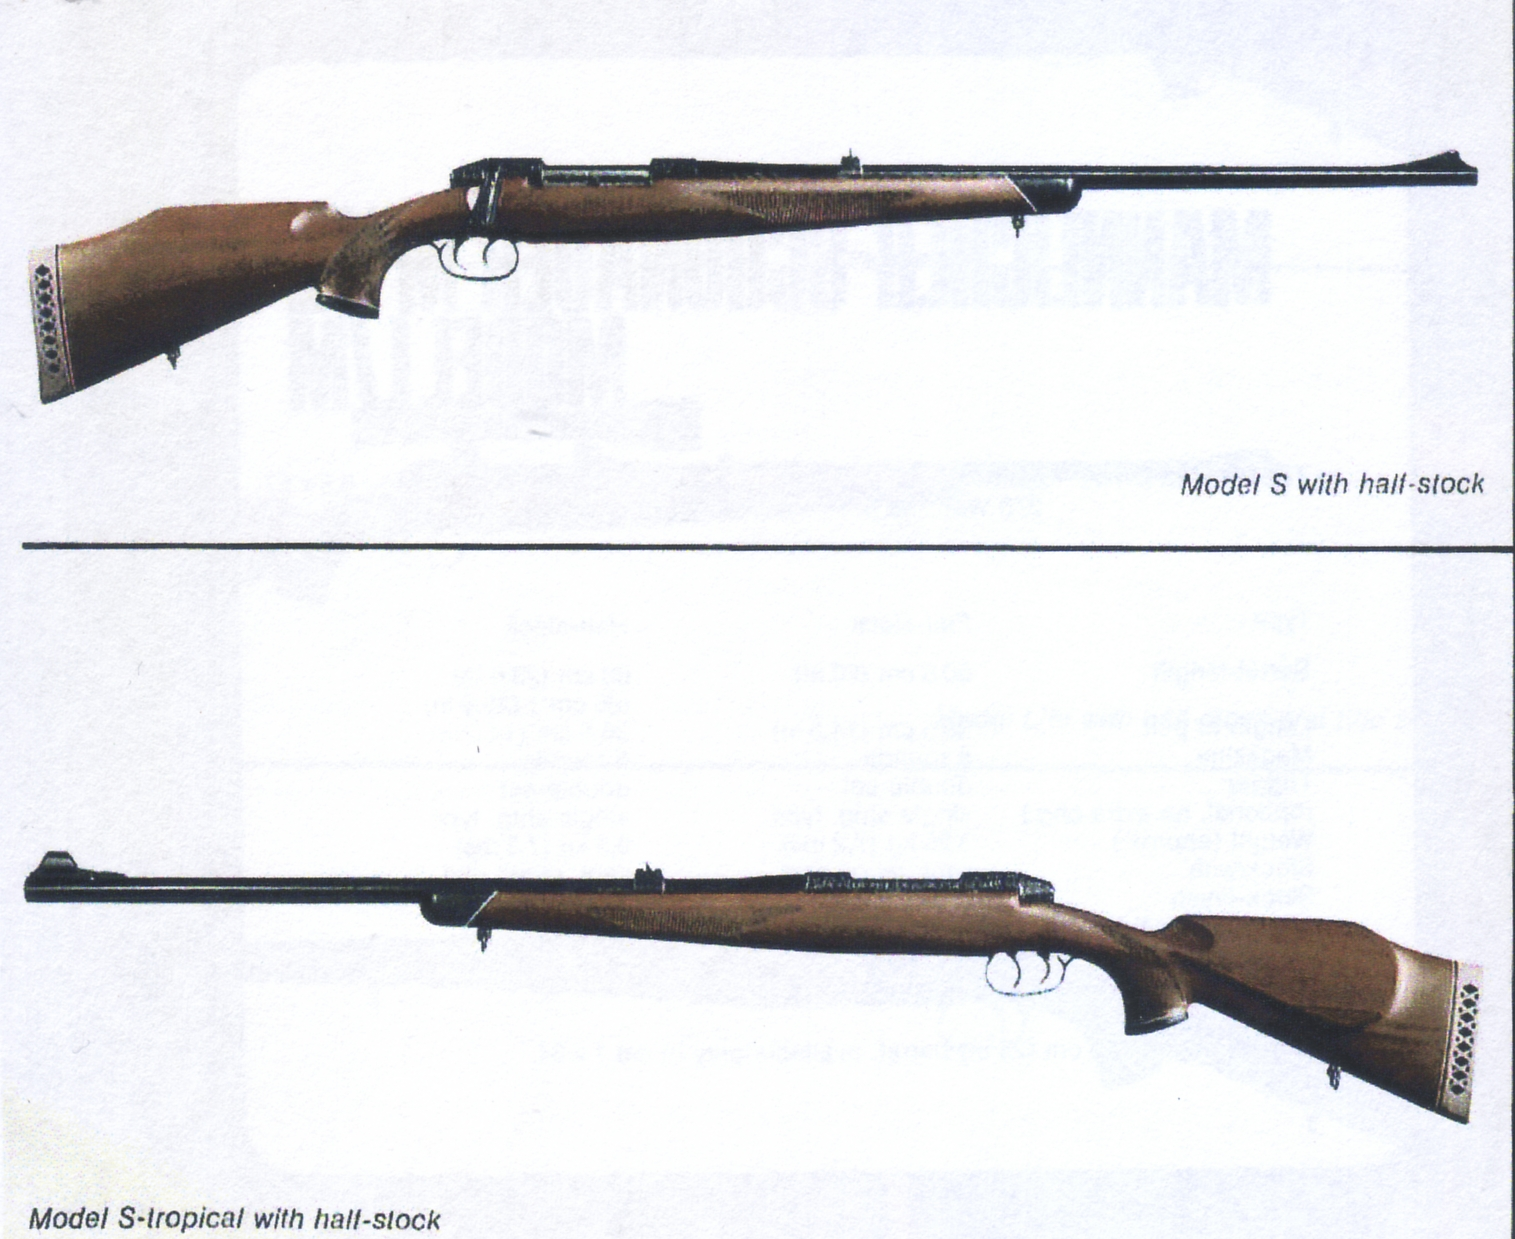 The Mannlicher-Schönauer M72 Model S and S/T stock style options. (Picture from the original Steyr catalog and courtesy of Steyr.)